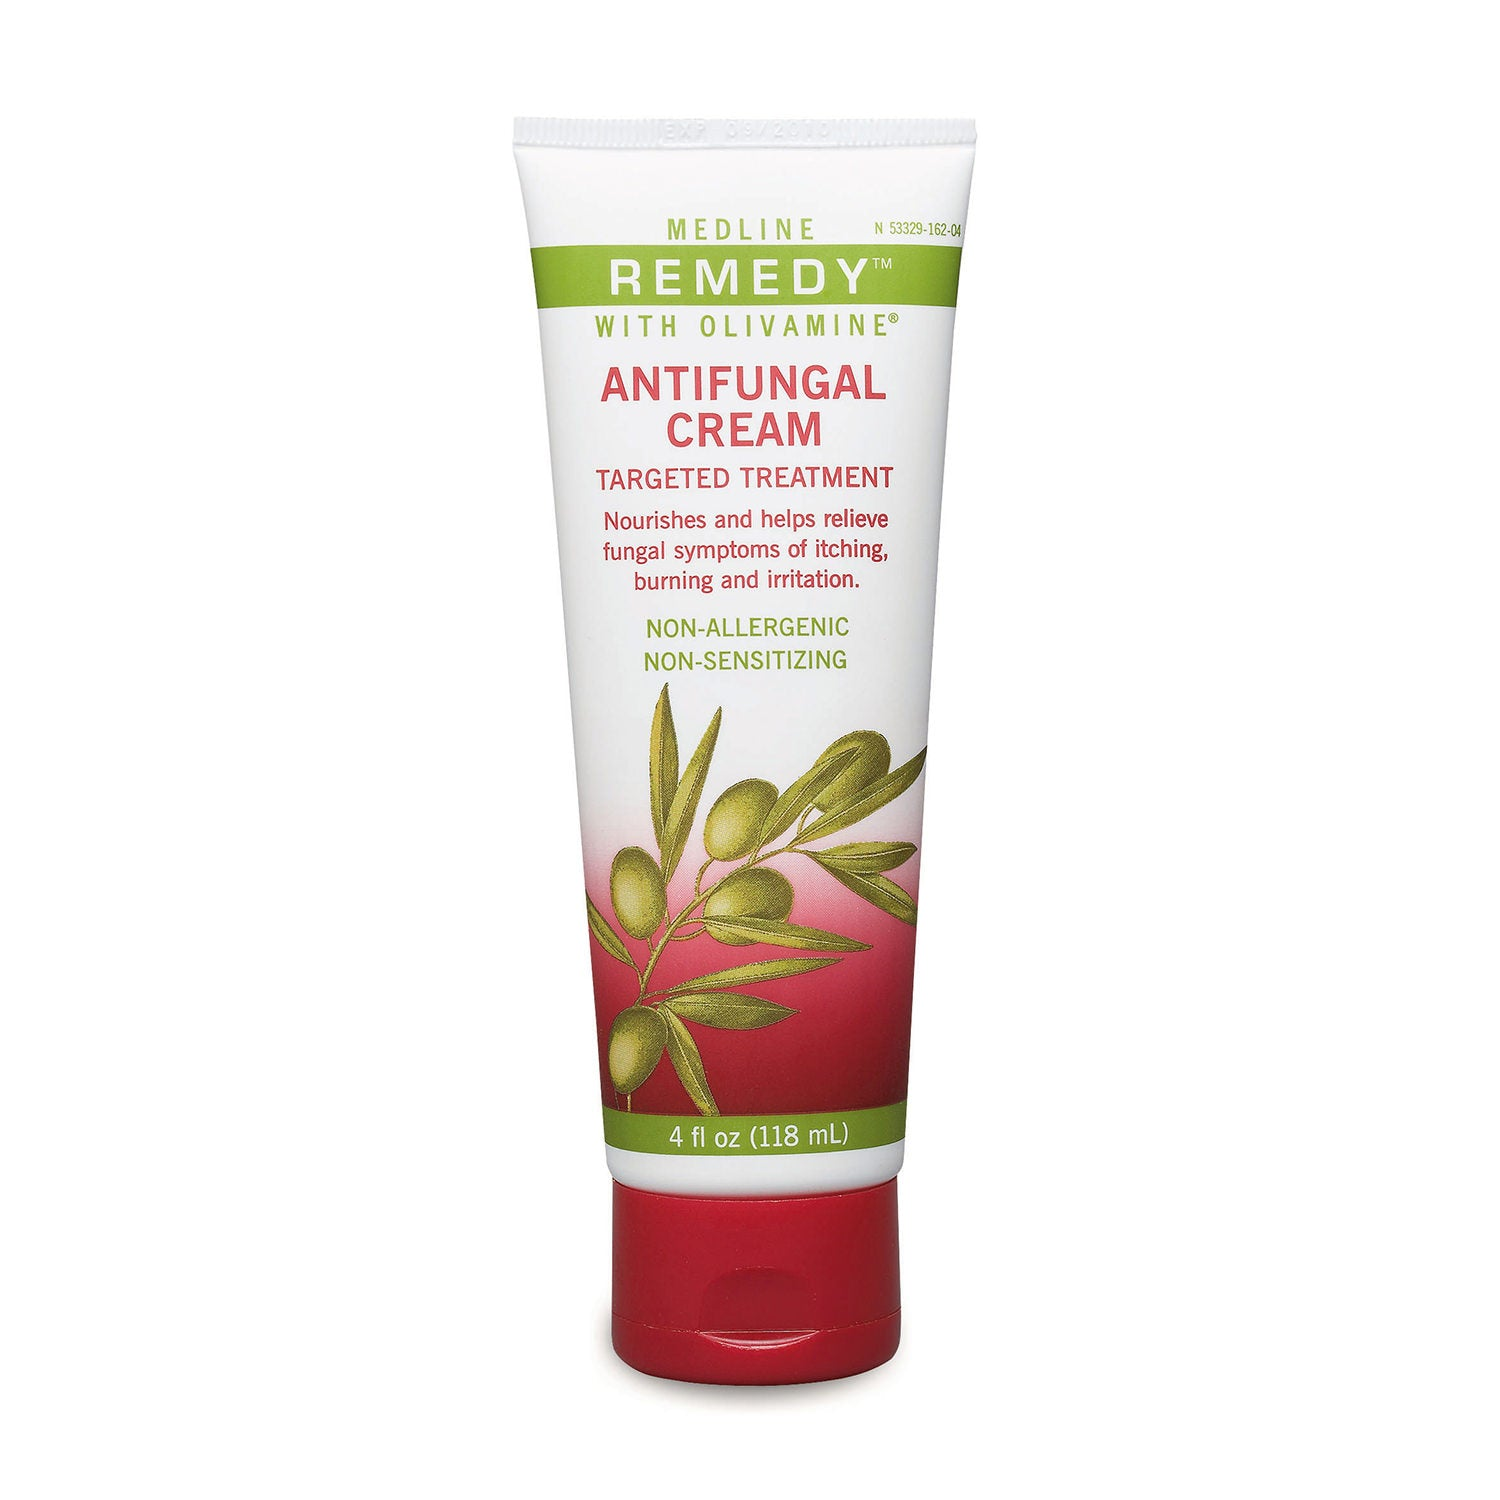 Remedy Olivamine Antifungal Cream - 7.17 oz.